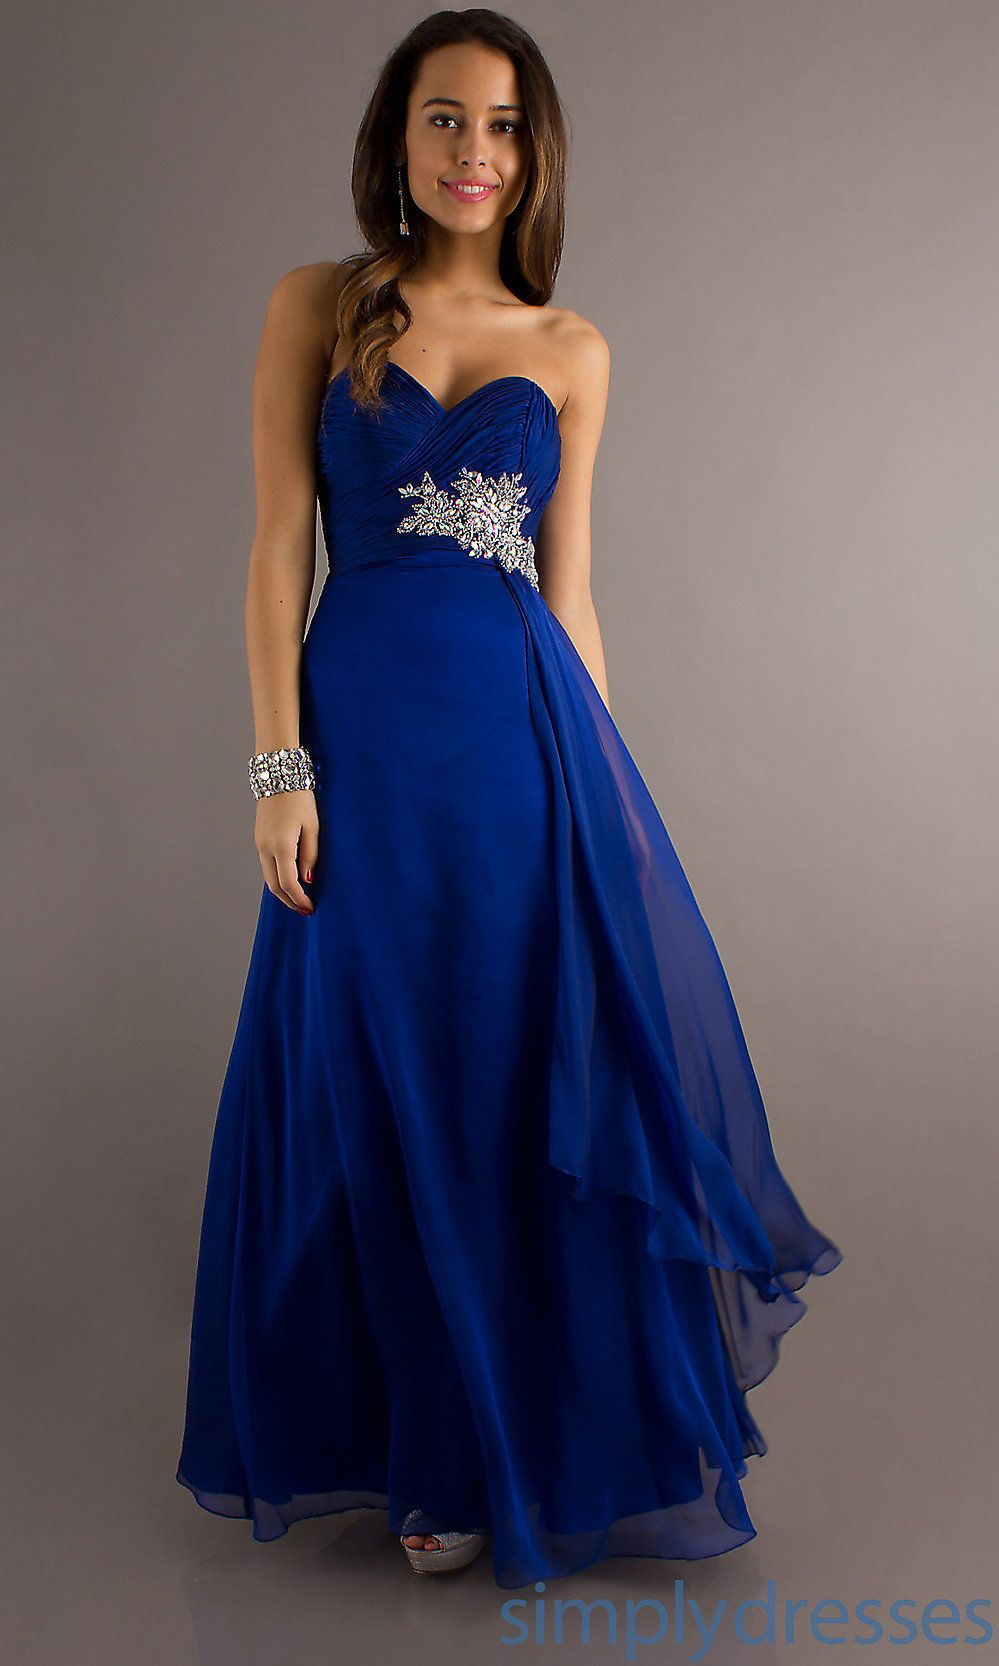 Bridesmaid dresses royal blue and silver 1 bridesmaid for Blue silver wedding dress